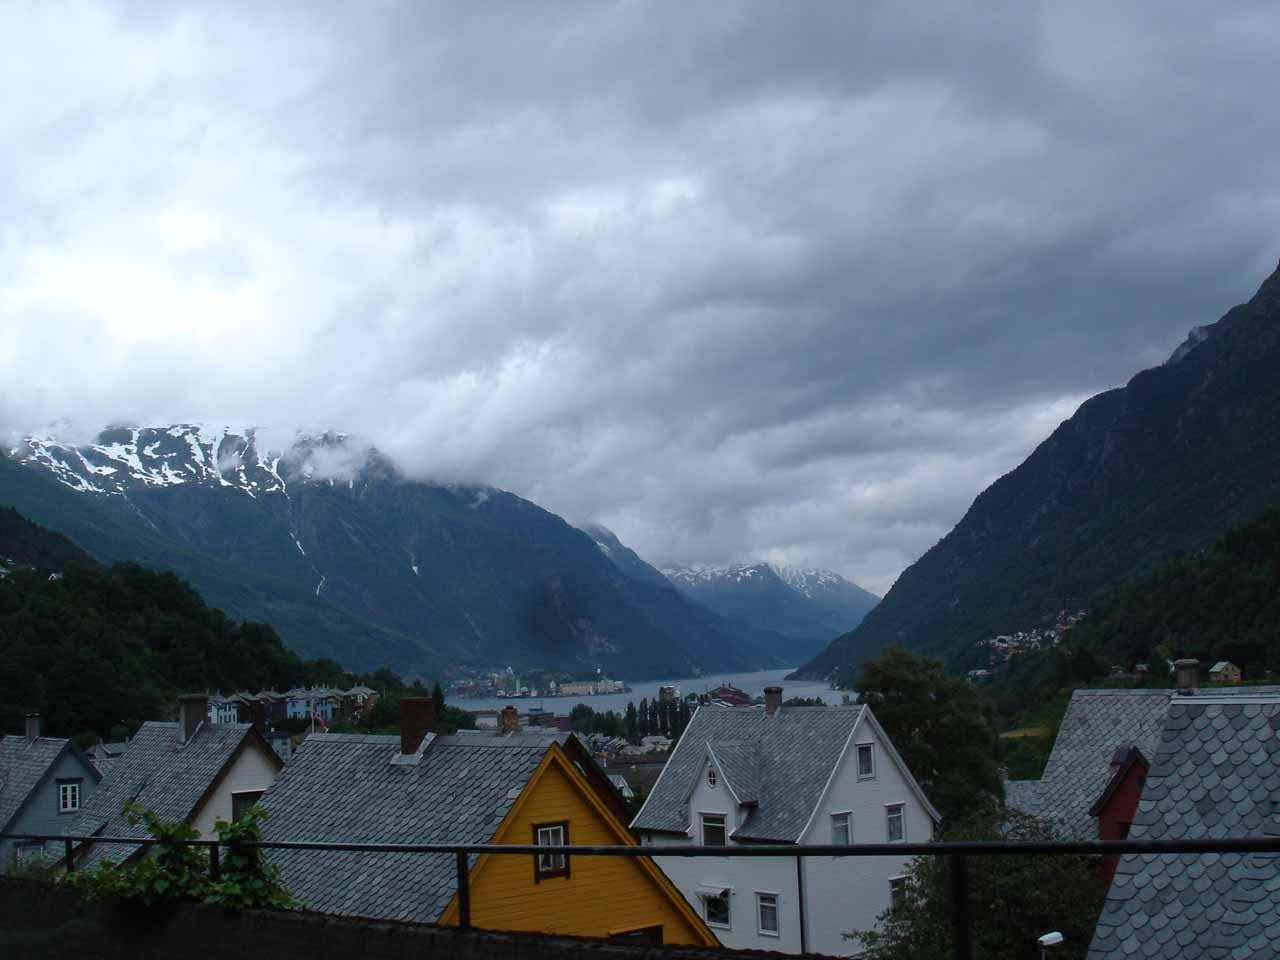 On the north end of the Odda Valley and the head of the Sørfjord was the beautifully-situated town of Odda, which was the main center of the Odda Municipality